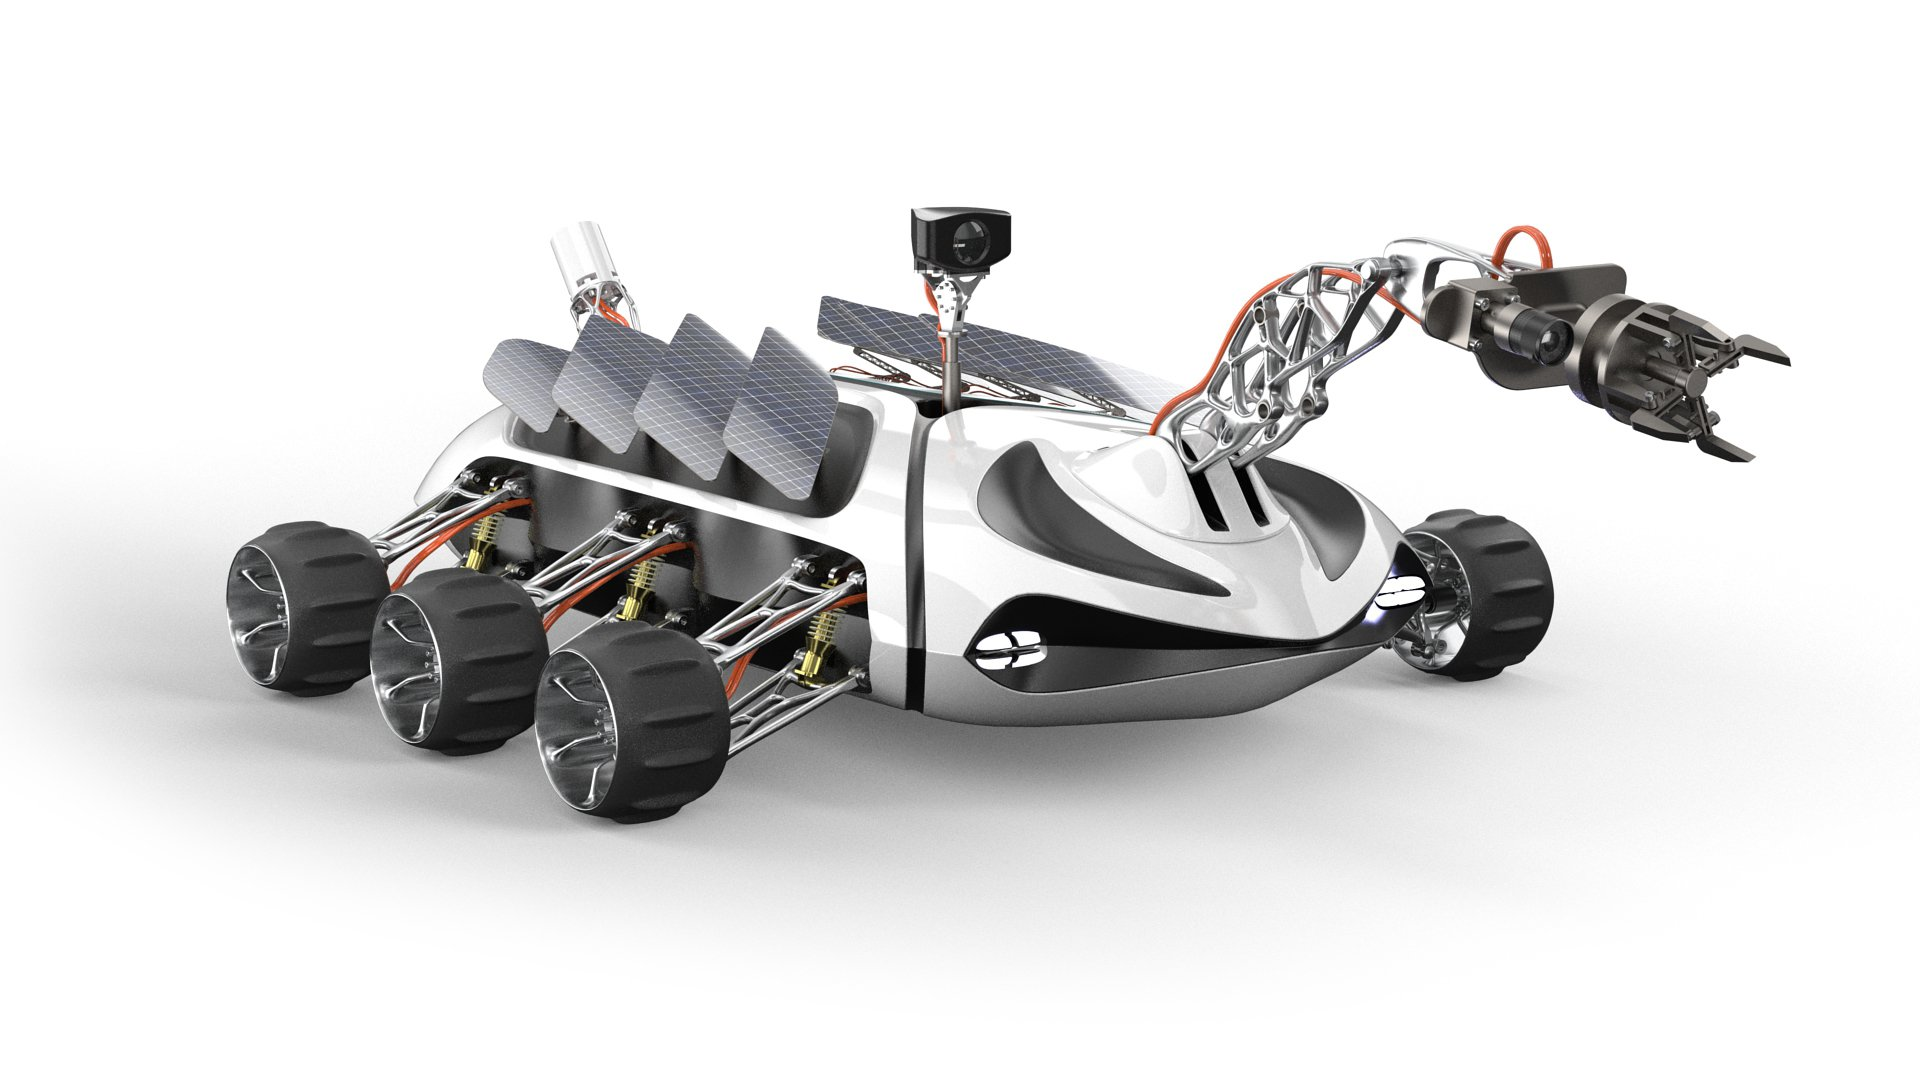 Altair Inspire Demo - solidThinking Inspire Optimized Rover